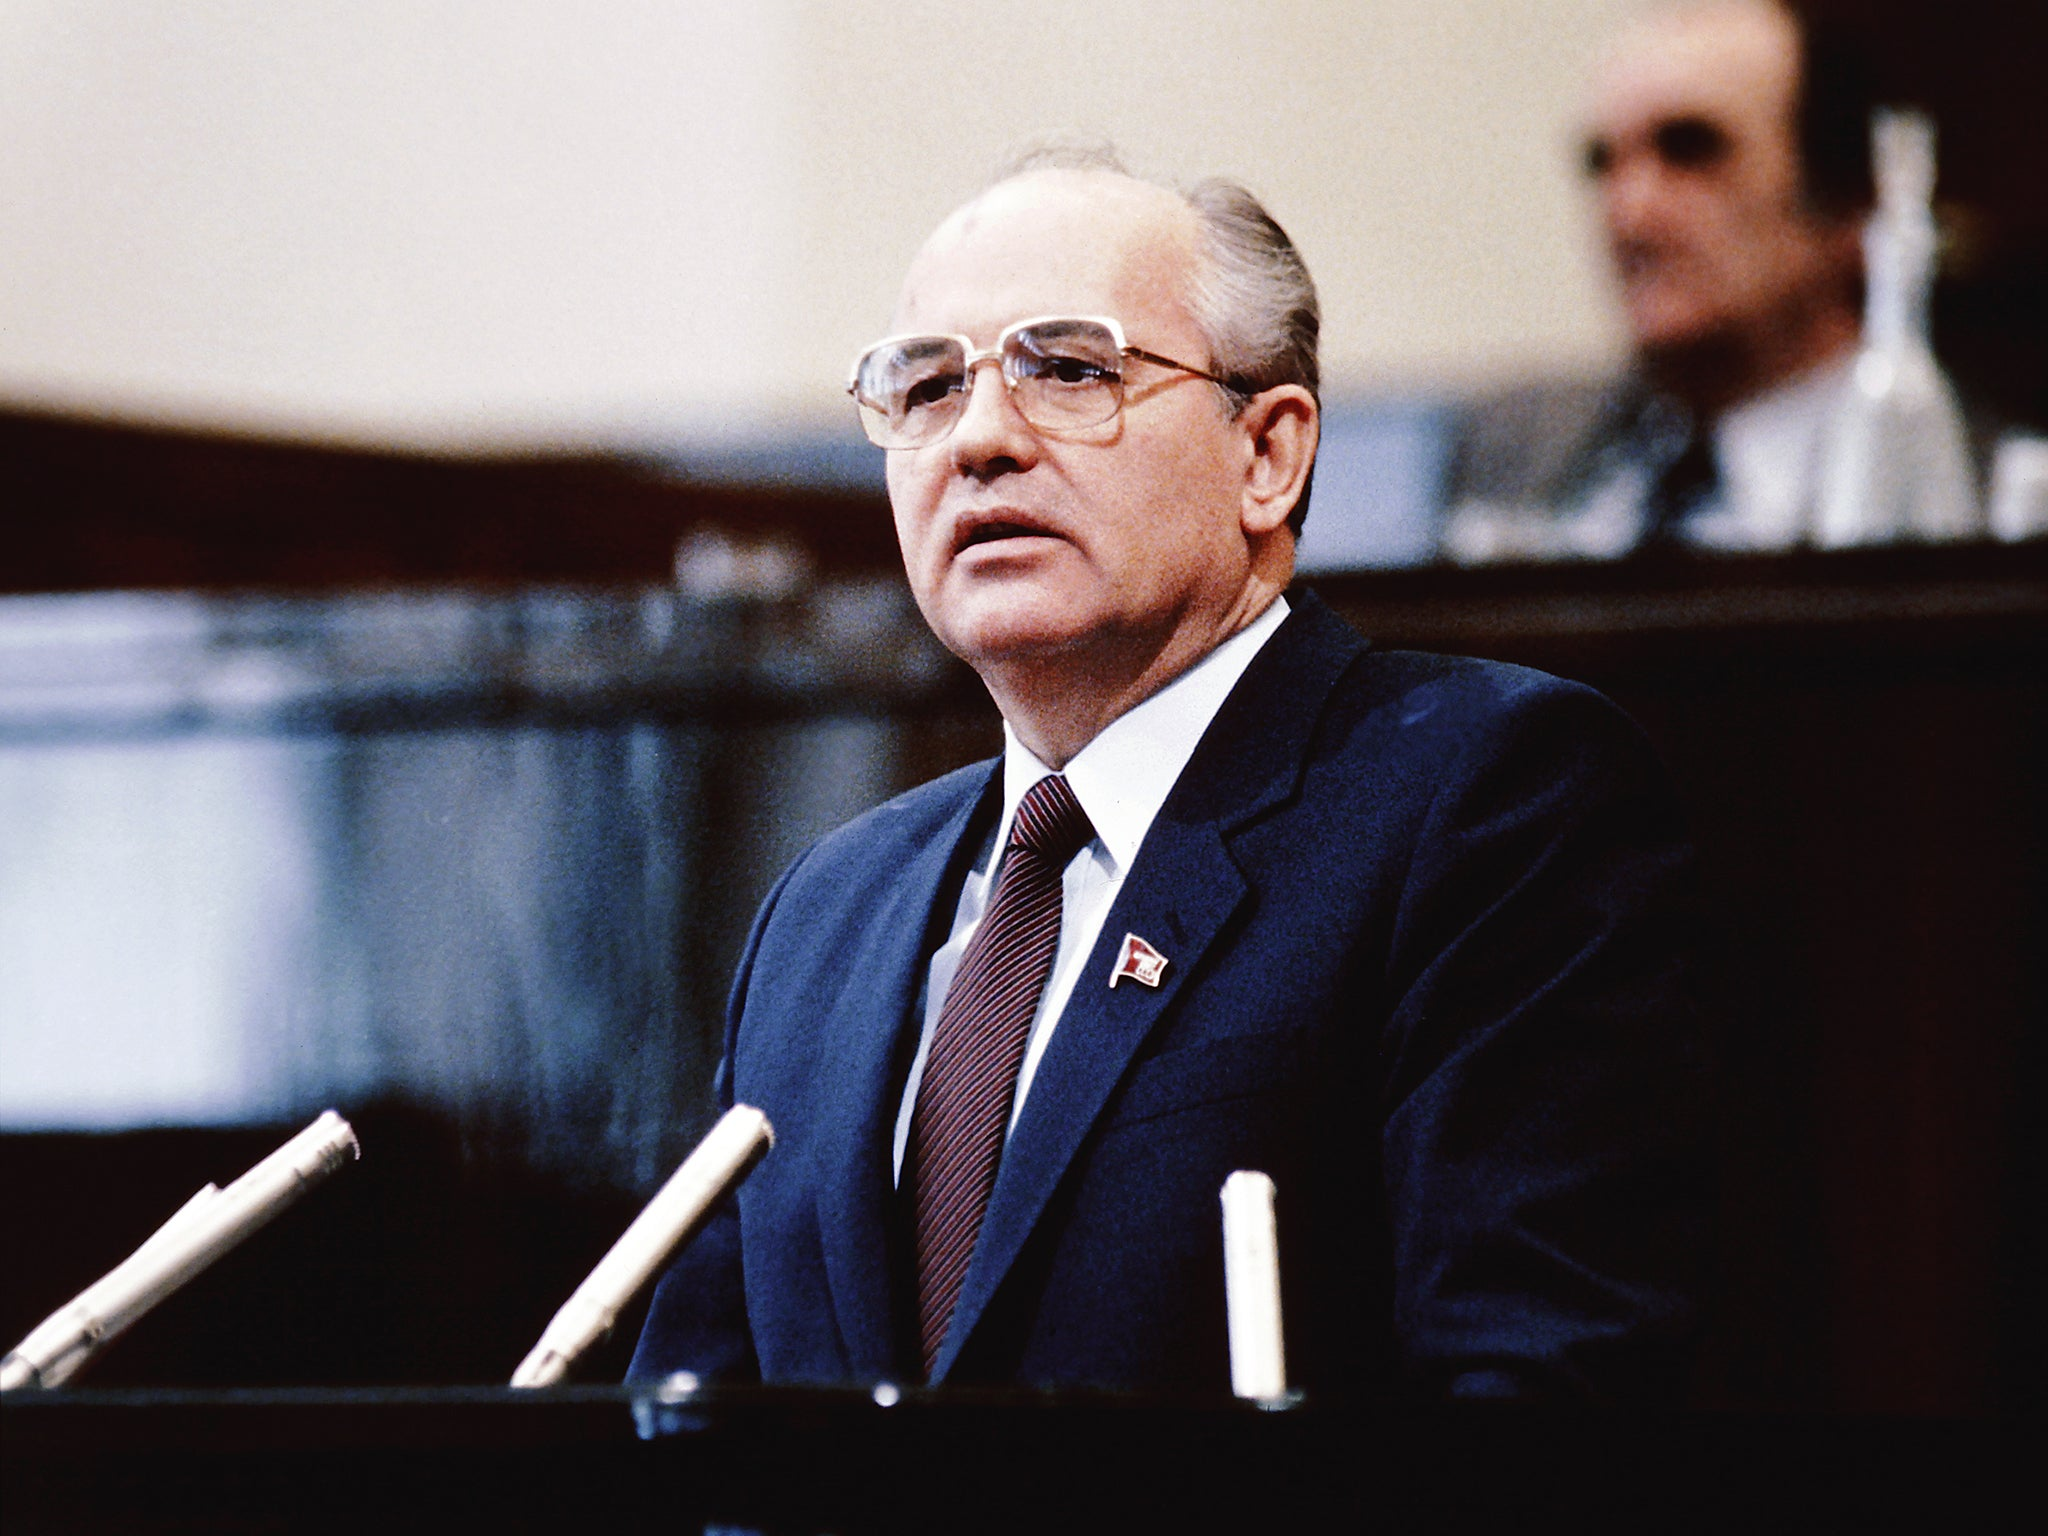 Mikhalkov accused Yeltsin and Gorbachev of political crimes 02/19/2016 24